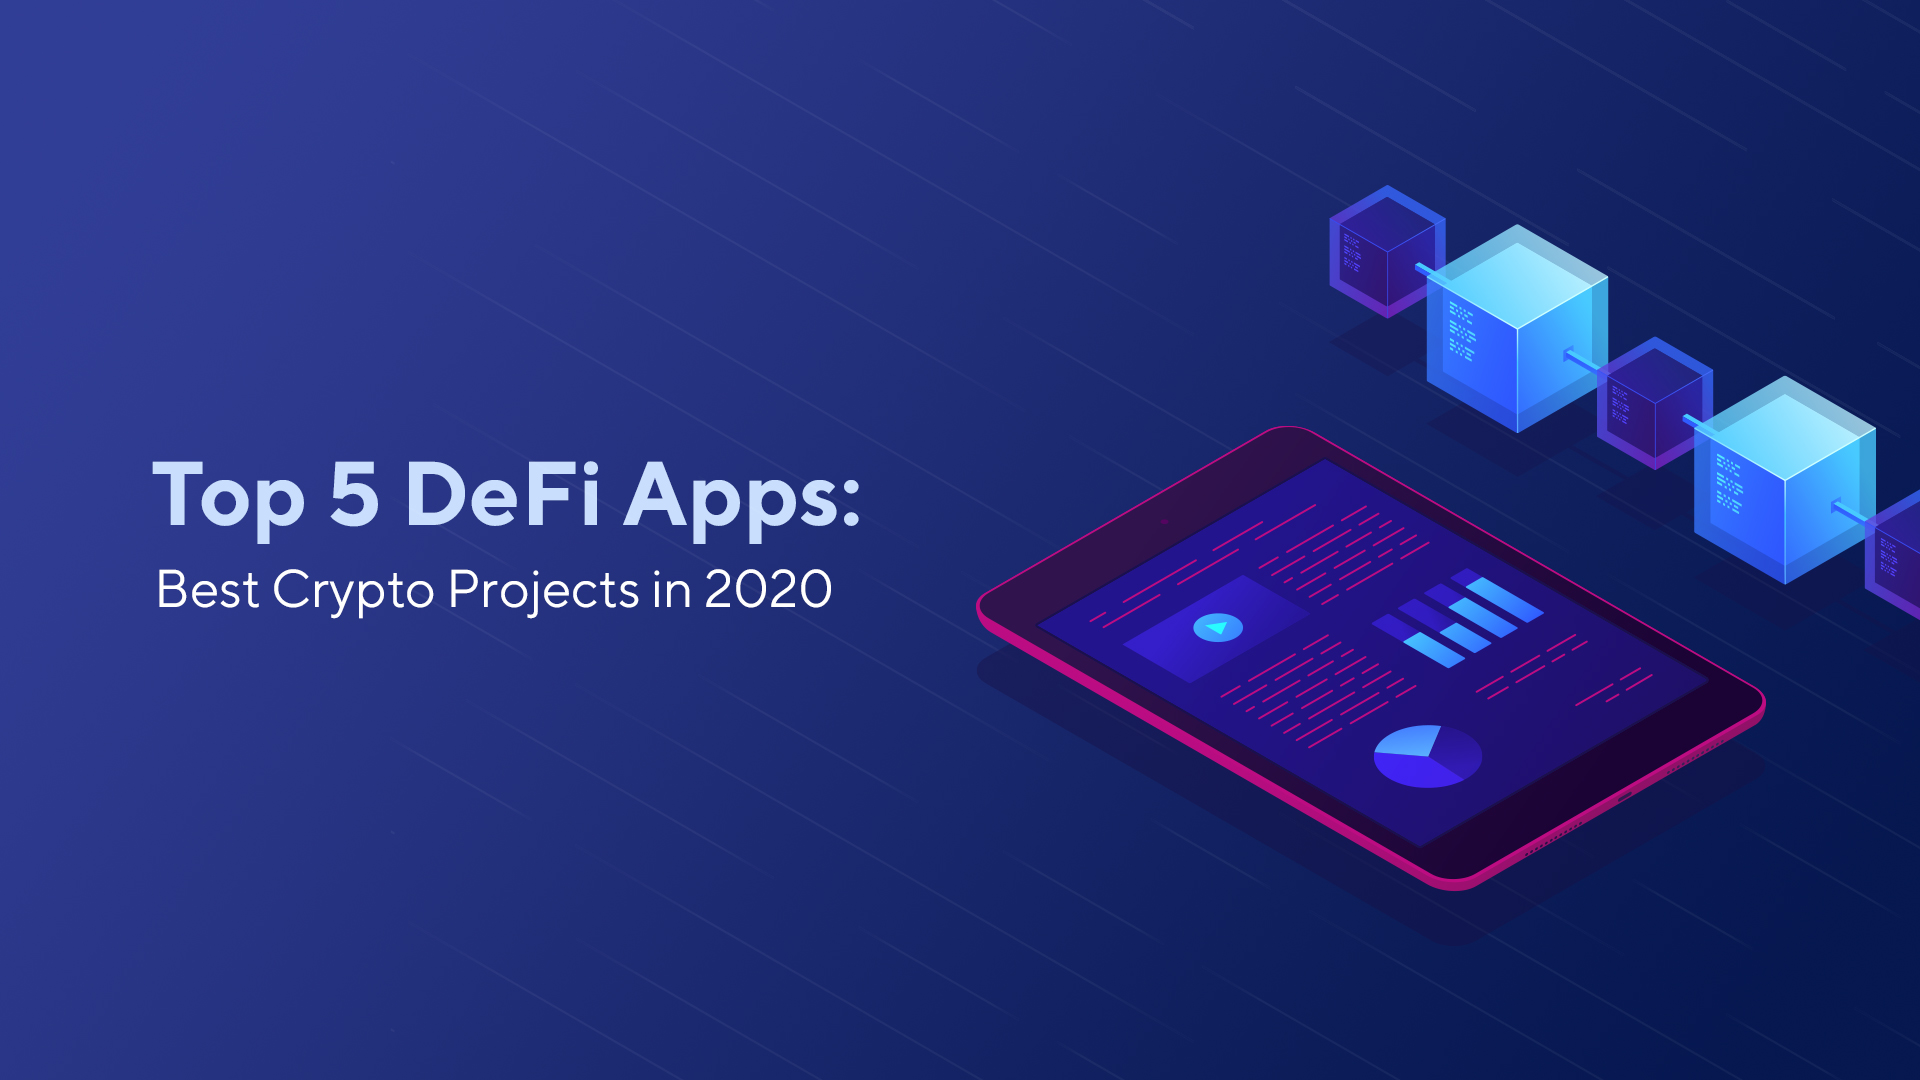 Top 5 DeFi Apps: Best Crypto Projects in 2020